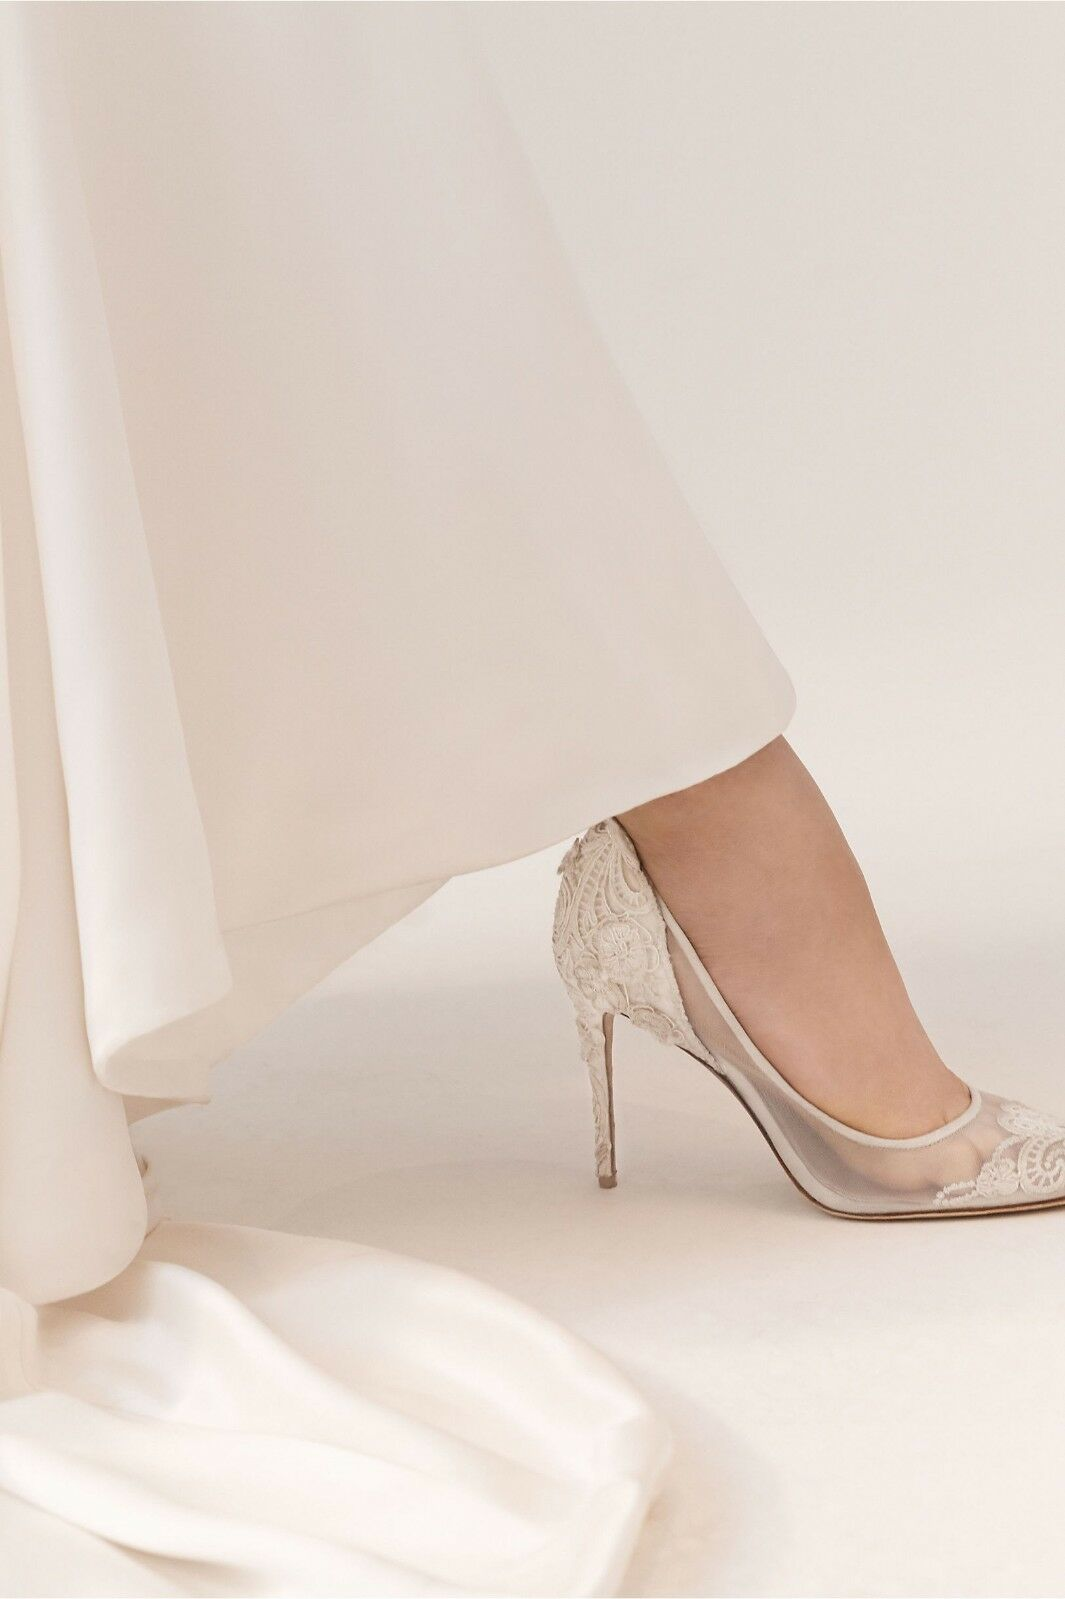 BHLDN Vince Camuto Imagine Victoria Heels Weiß Wedding Lace Lace Lace Bridal Sz 8.5 38.5 db7eac